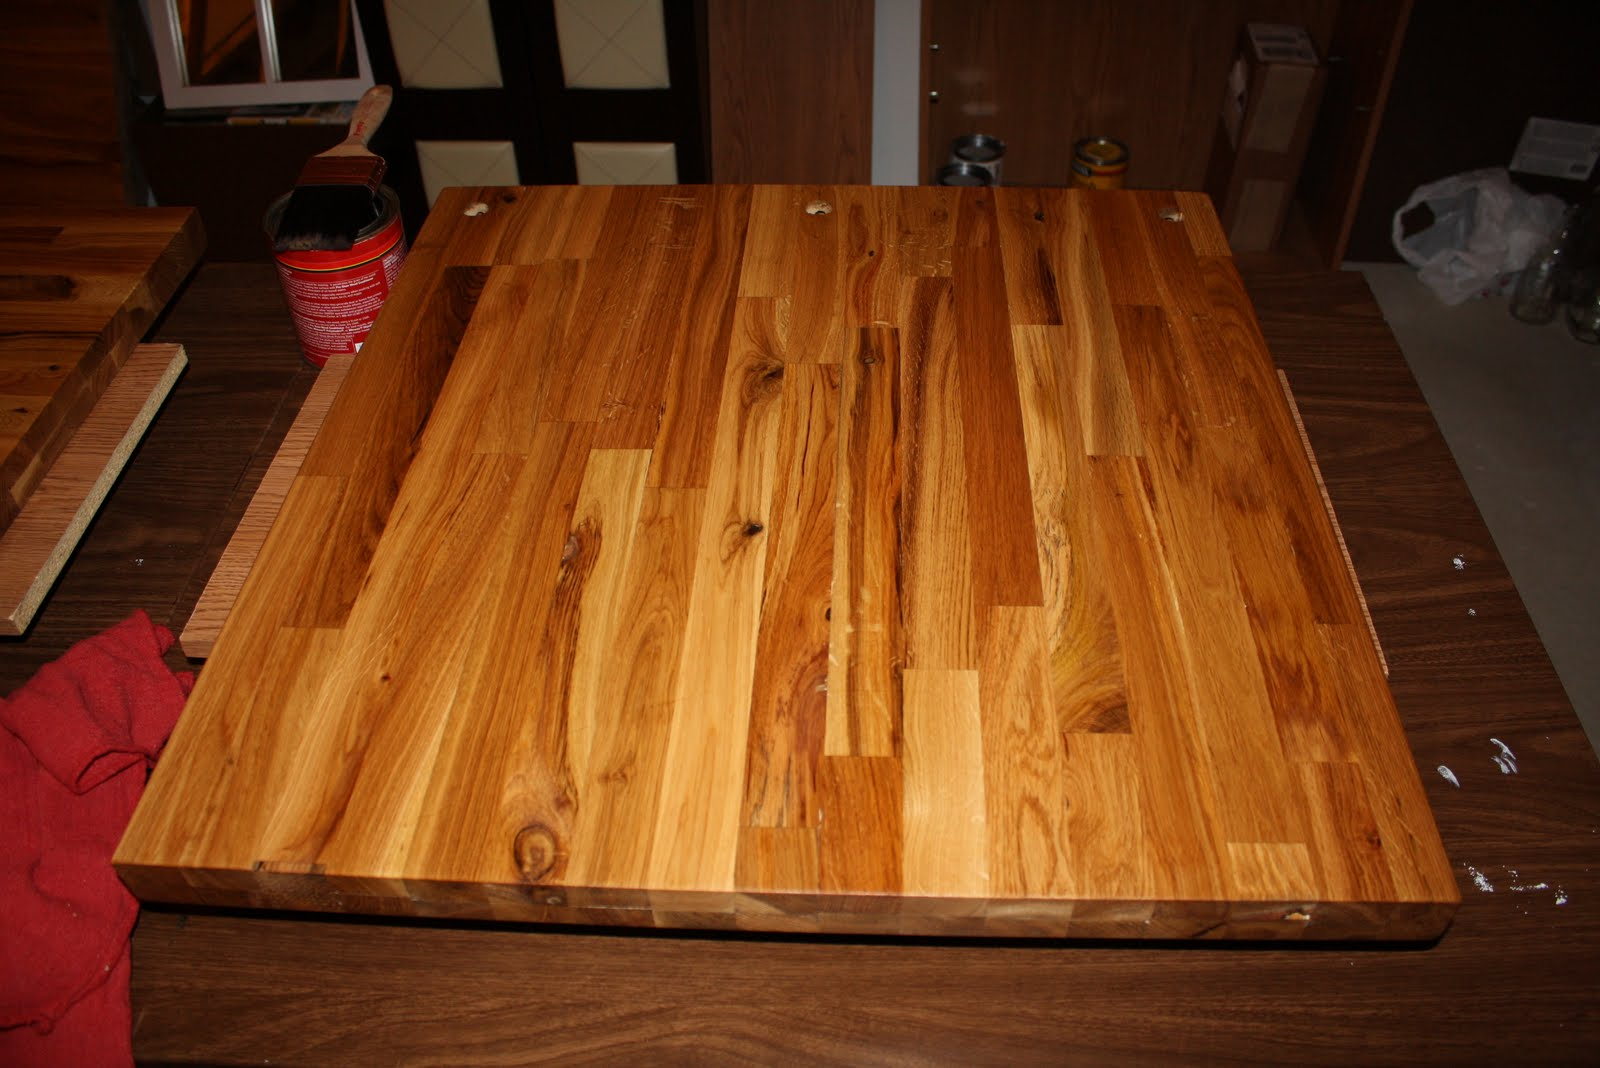 How to Stain Butcher Block Countertops - The Stillwater Story